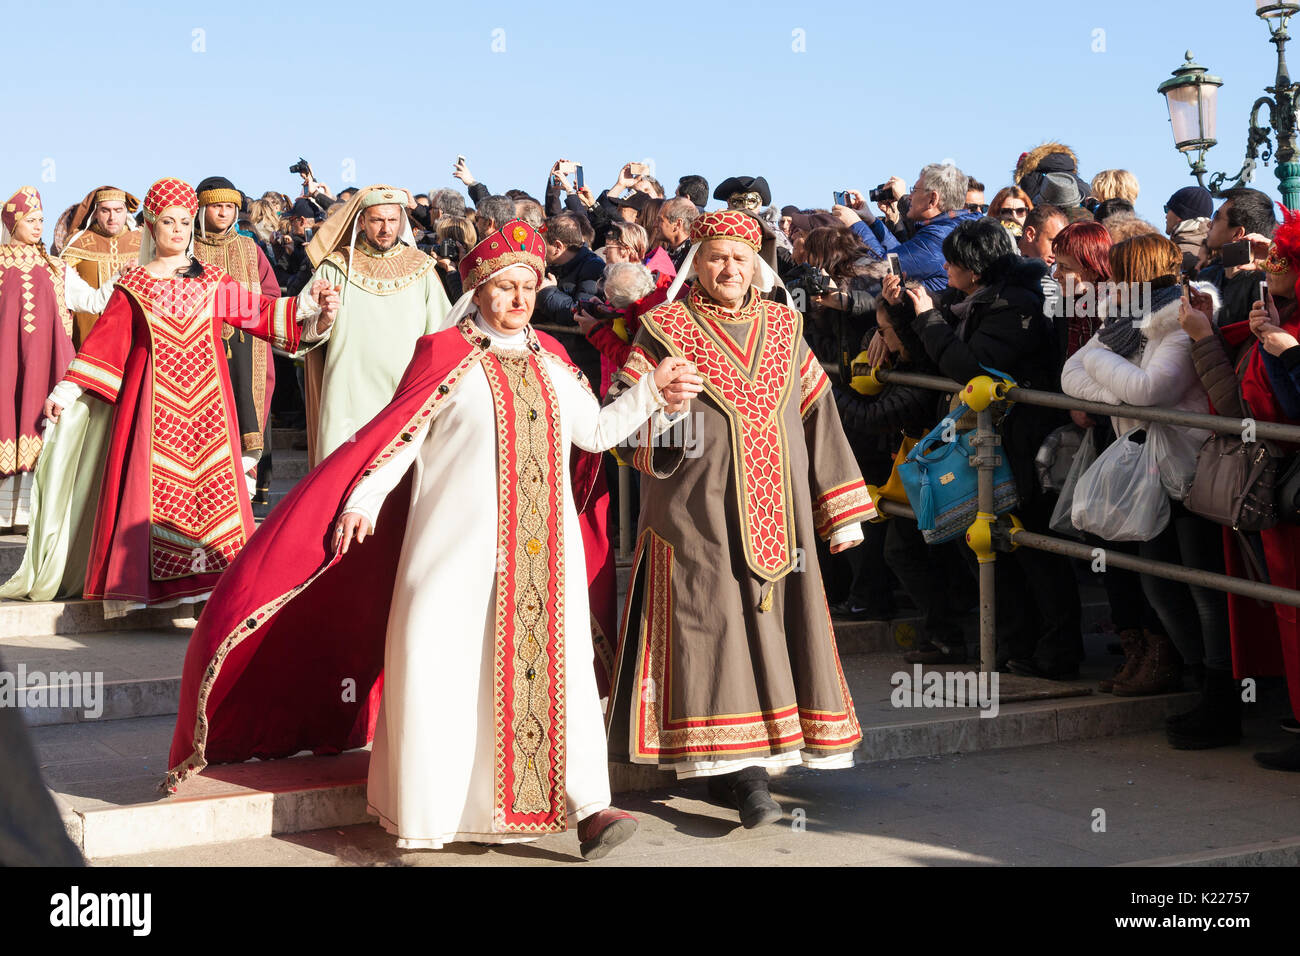 18 Feb 2017 Venice, Italy. Venetians dressed as aristocrats in the Festa della Maries prociession during Carnival - Stock Image